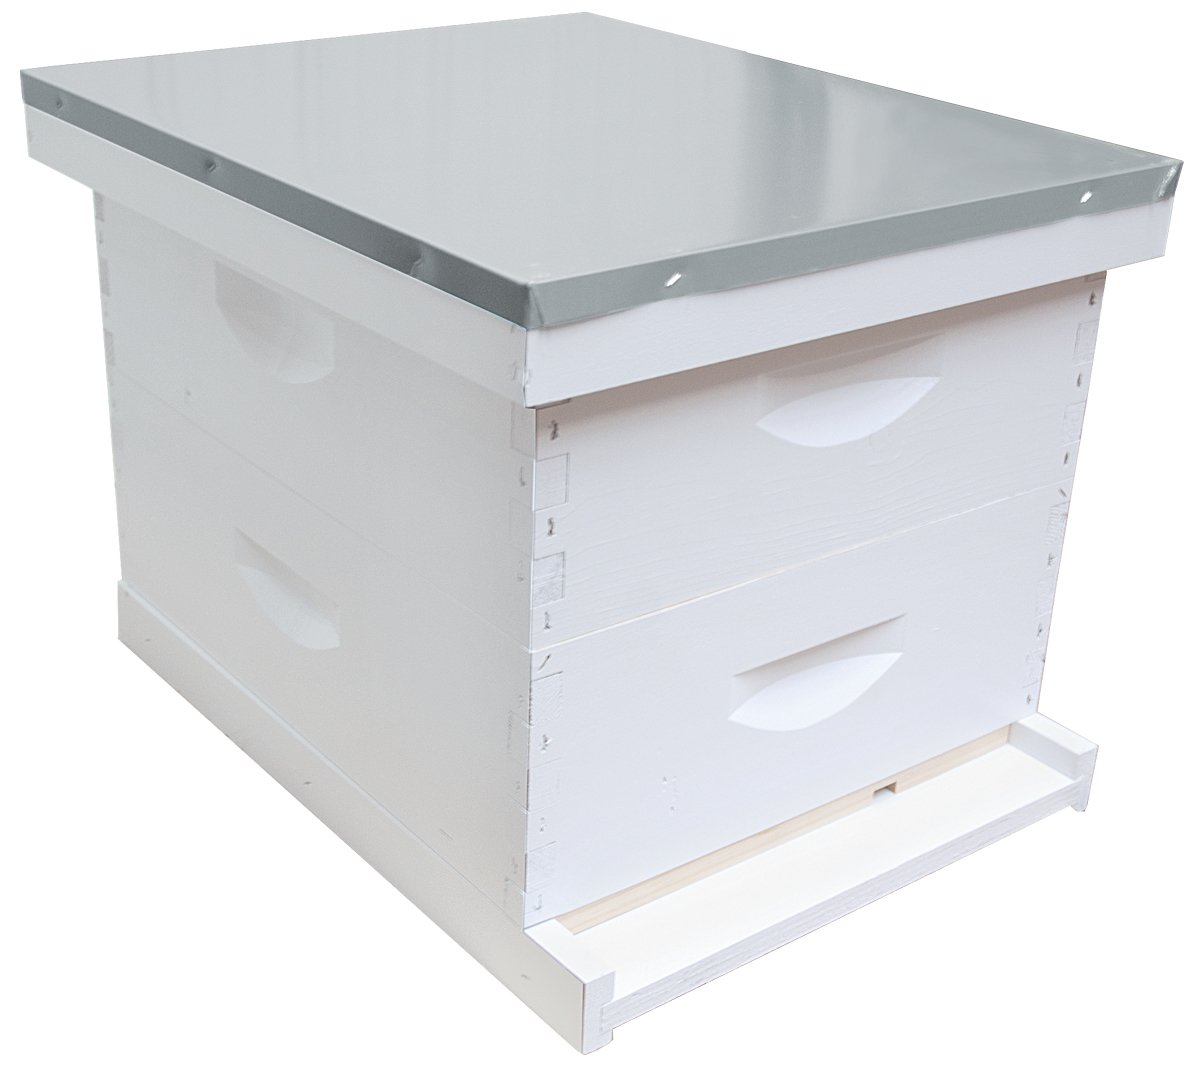 10-Frame Complete 6-5/8-Inch Hive Kit, Assembled, Made in The USA by Mann Lake